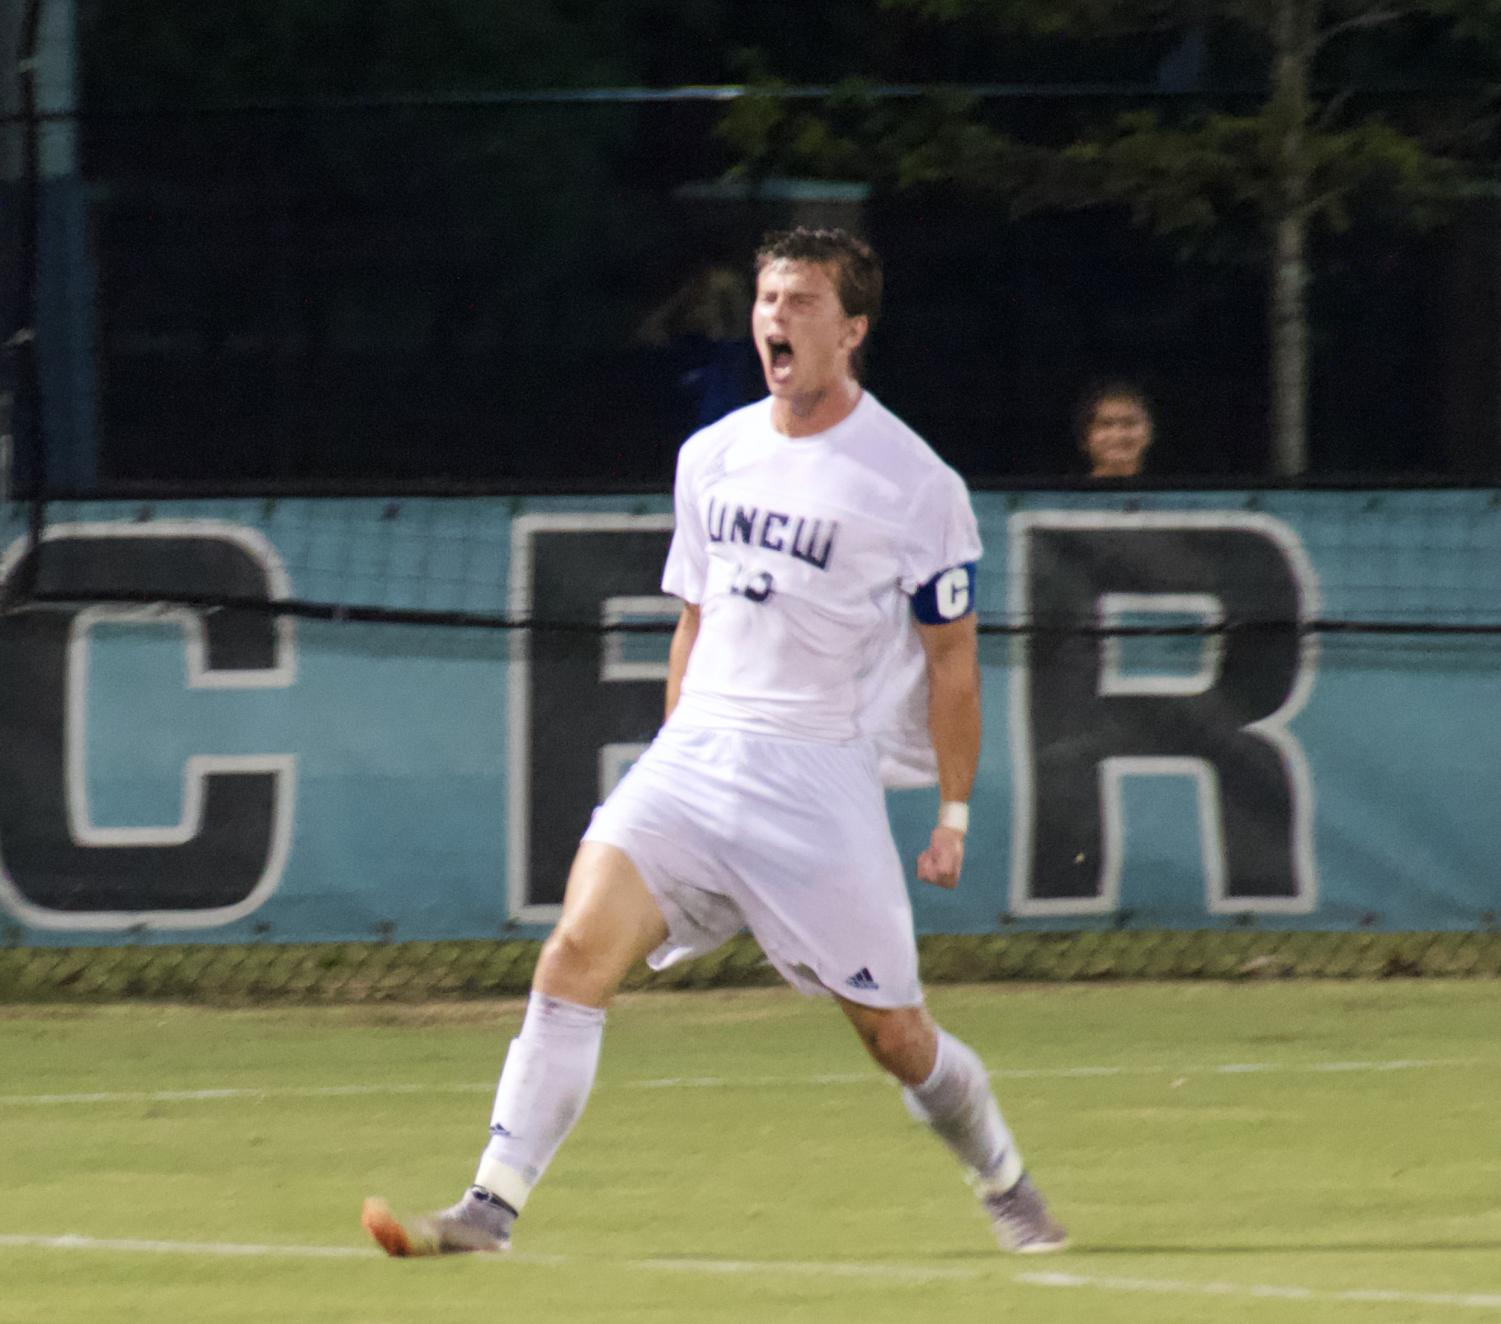 No. 10 Phillip Goodrum celebrates after scoring